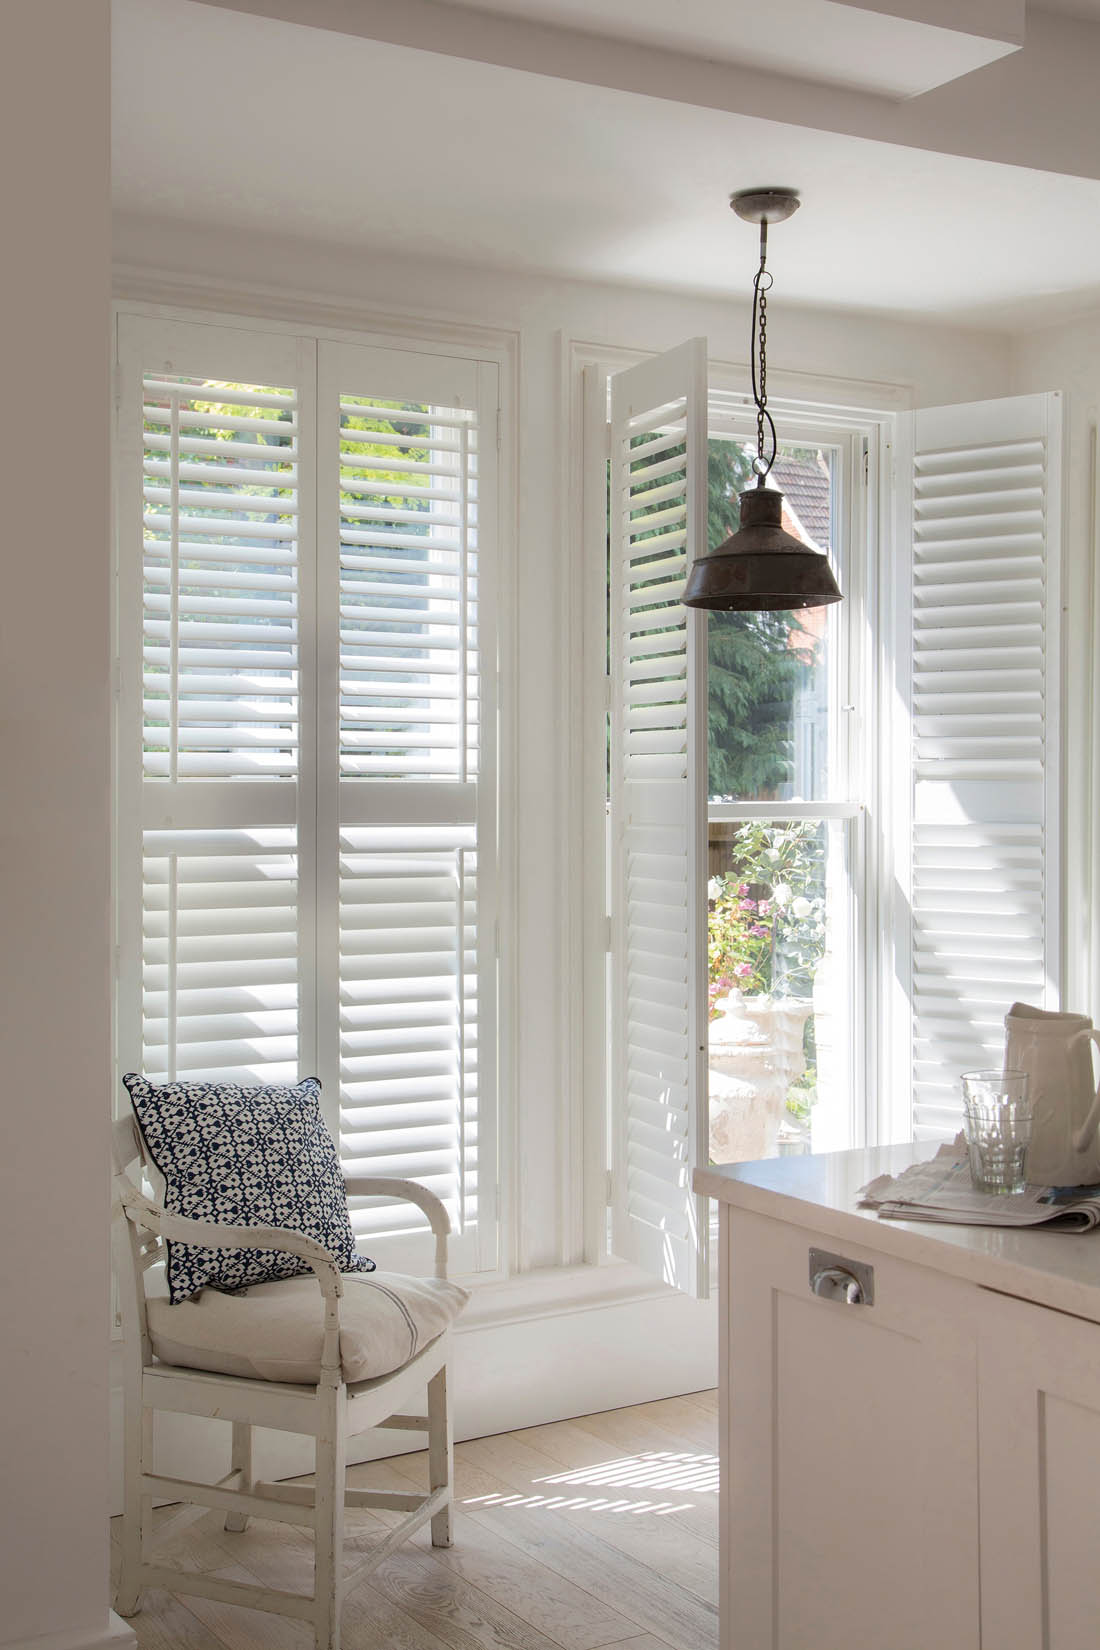 Full height interior wooden shutters in kitchen | Making the most of your windows | Luxaflex shutters | Apartment Apothecary